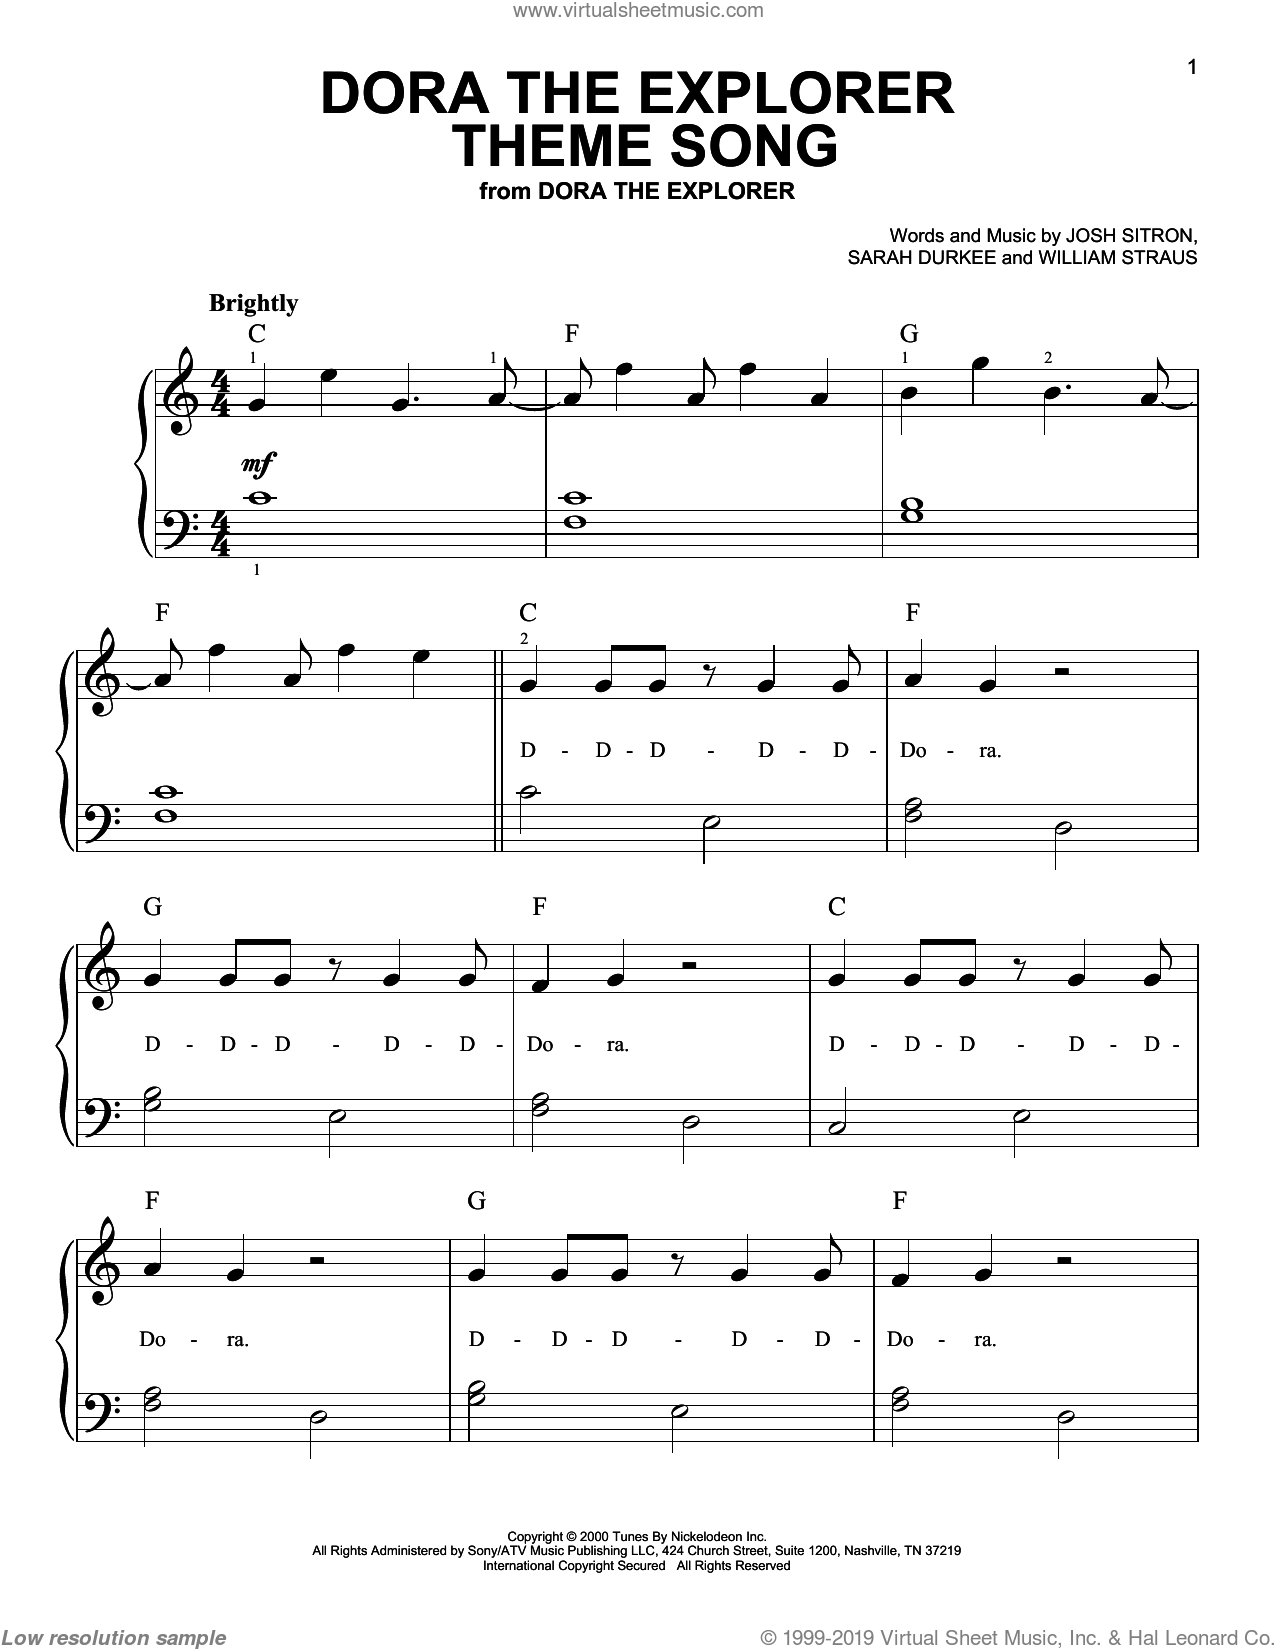 Dora The Explorer Theme Song sheet music for piano solo (chords) by Sarah Durkee